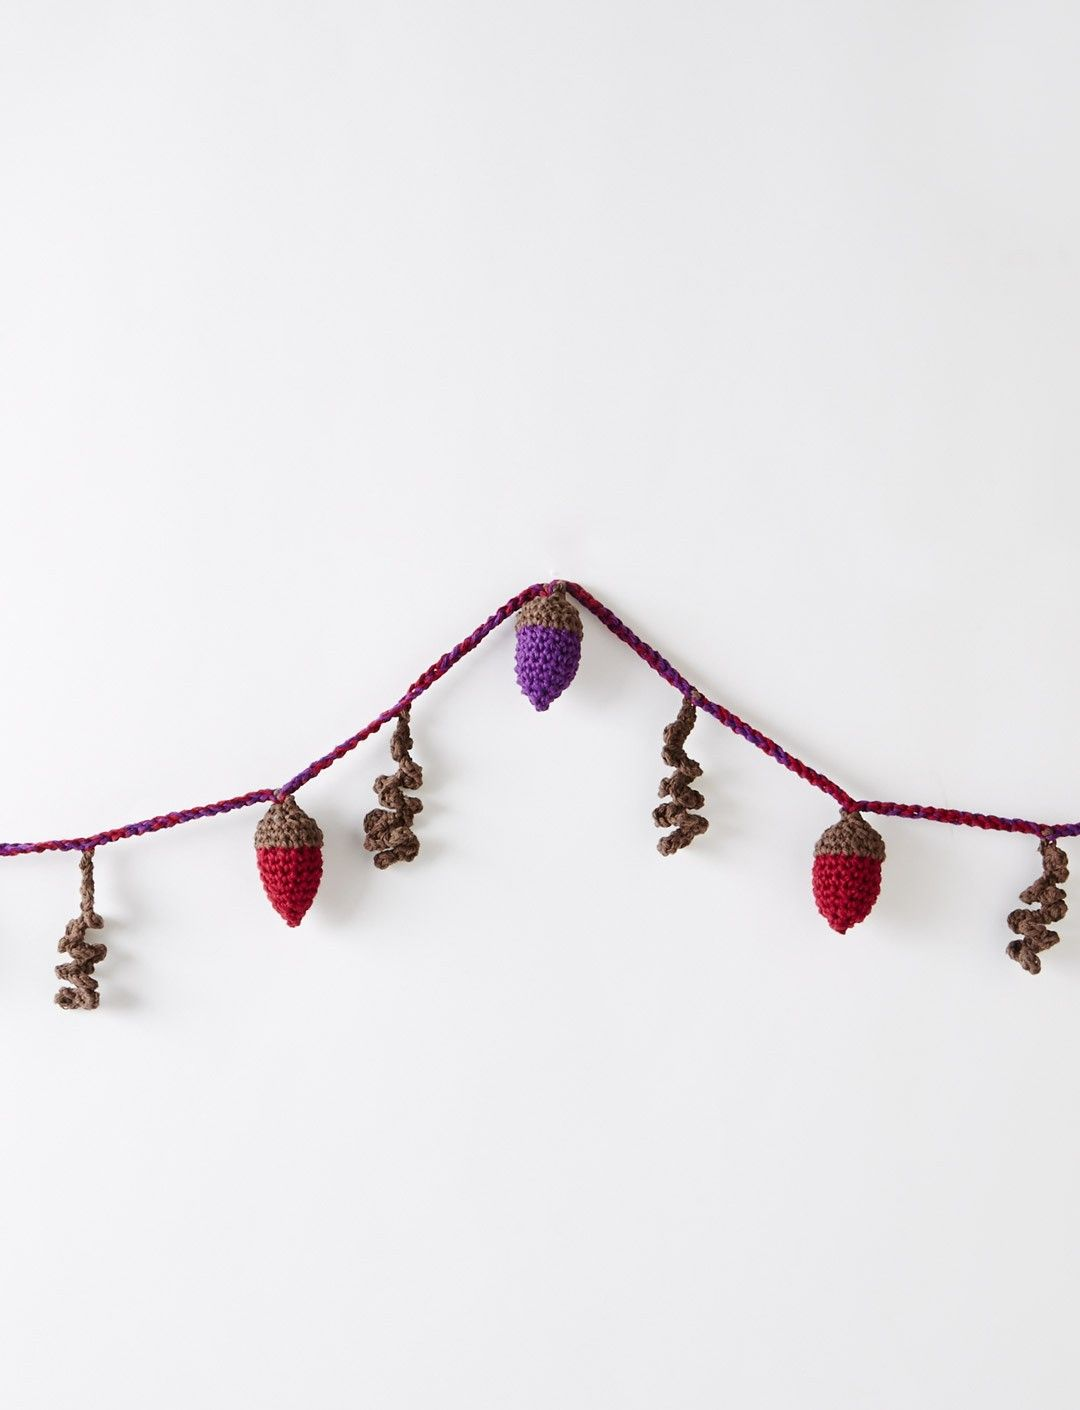 Yarnspirations.com - Bernat Autumn Acorns Garland - Patterns ...